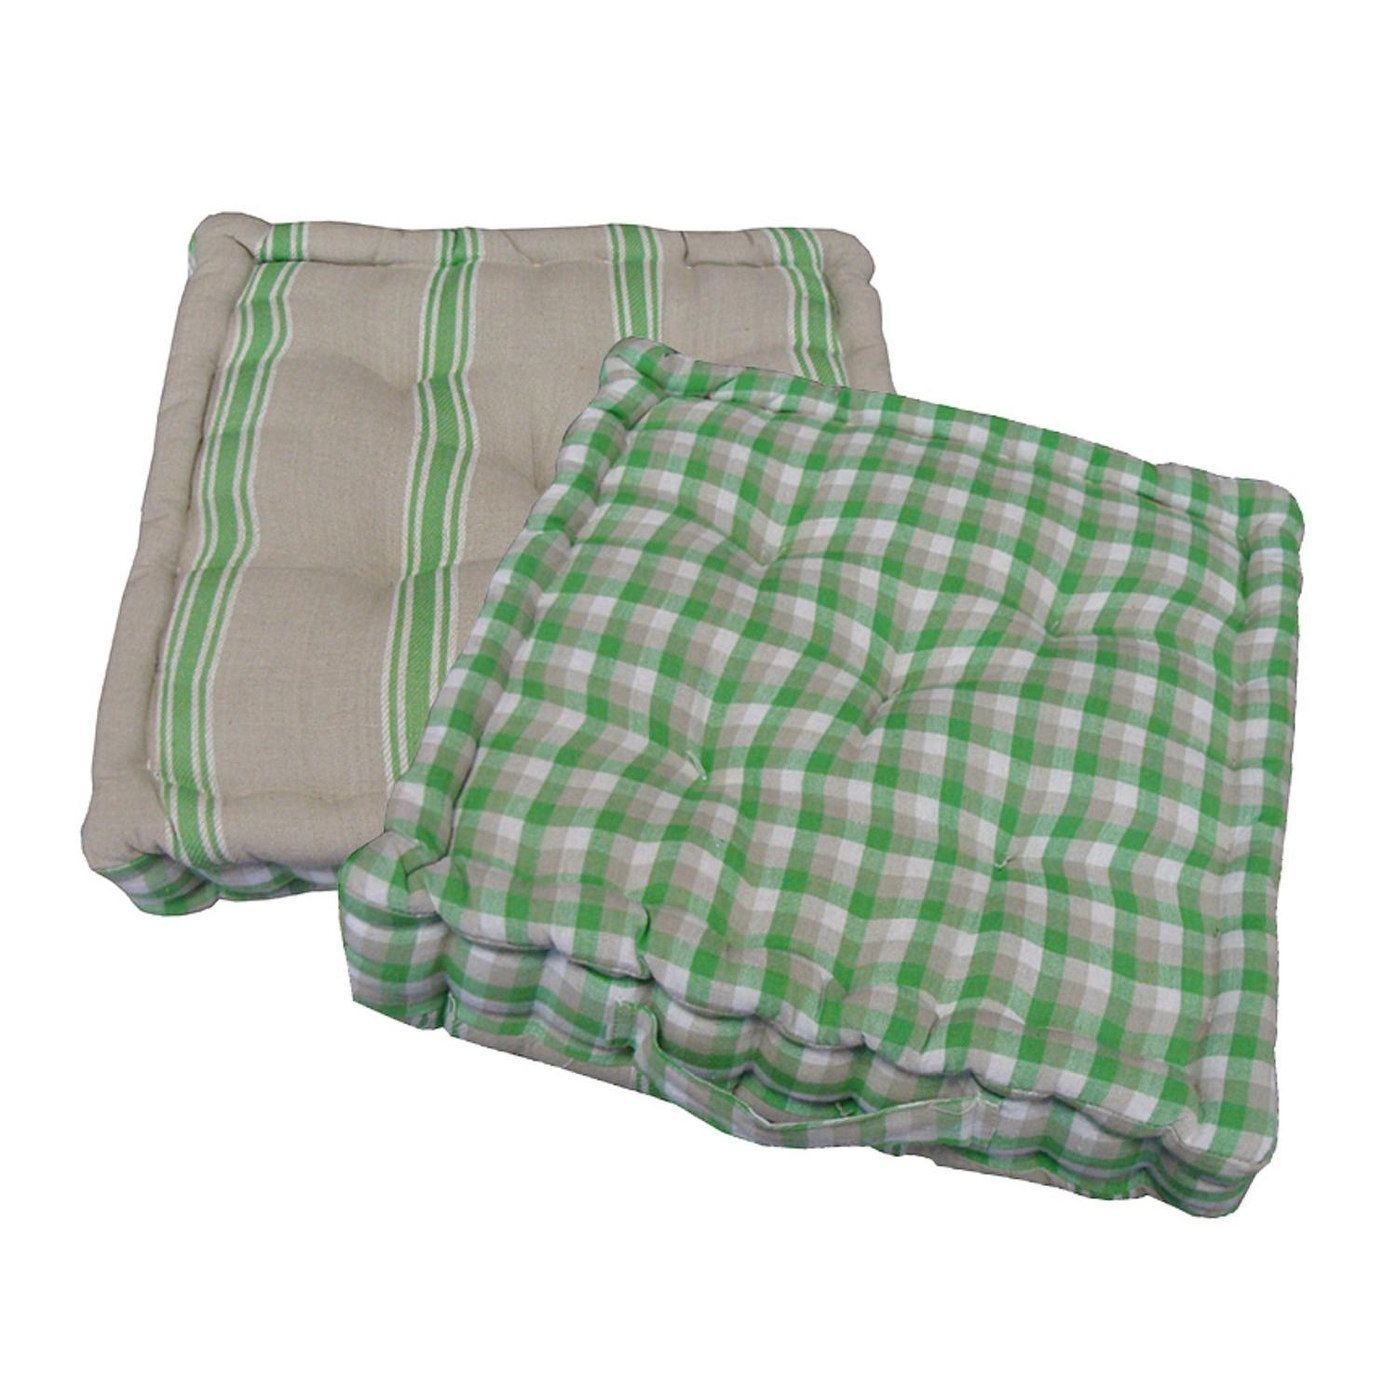 15 Plush Green, White and Beige Plaid and Striped Reversible Indoor ...